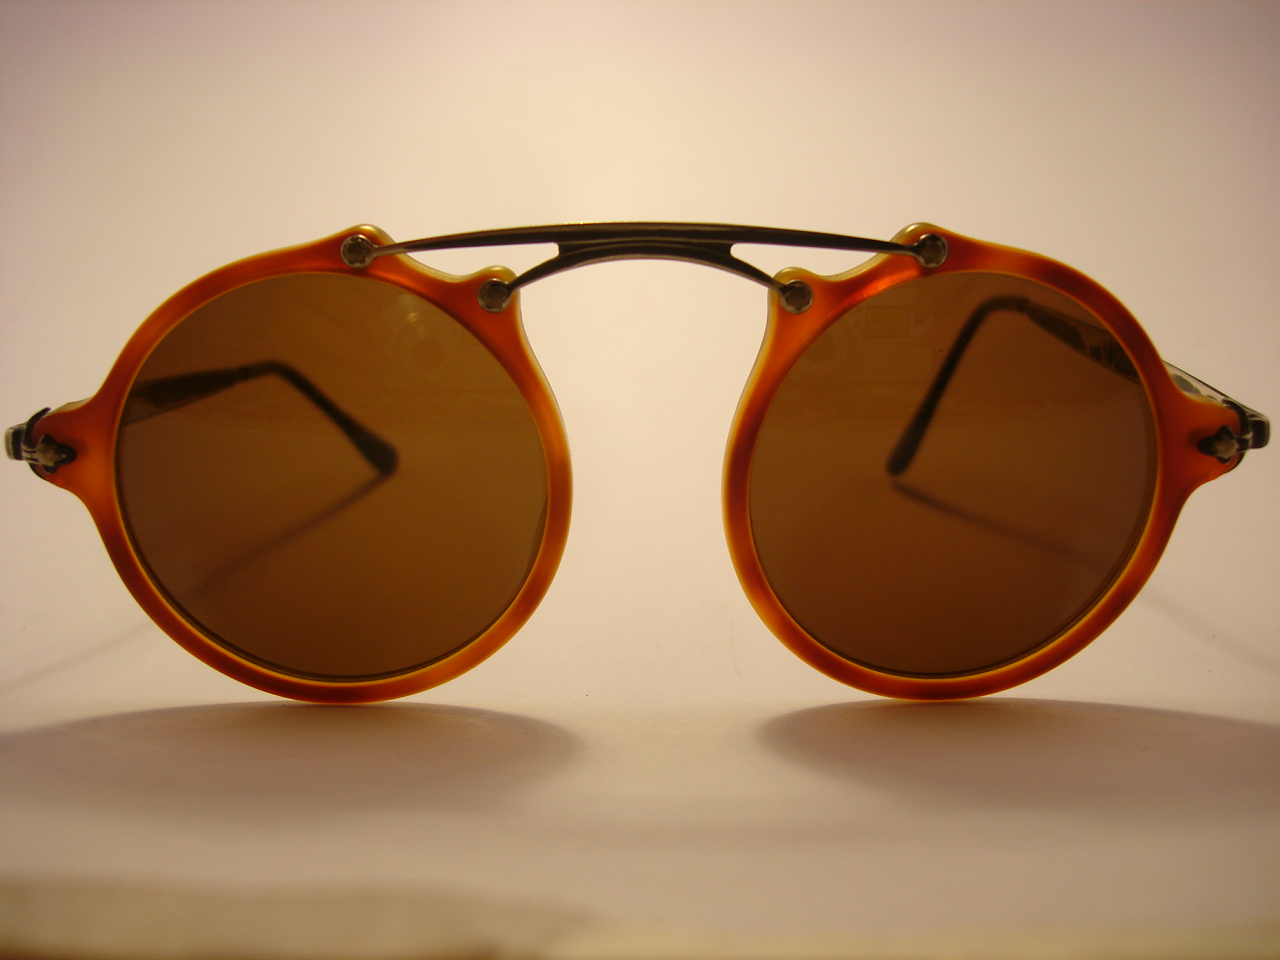 Italian Glasses Frame Company : theothersideofthepillow: vintage BEST COMPANY round ...